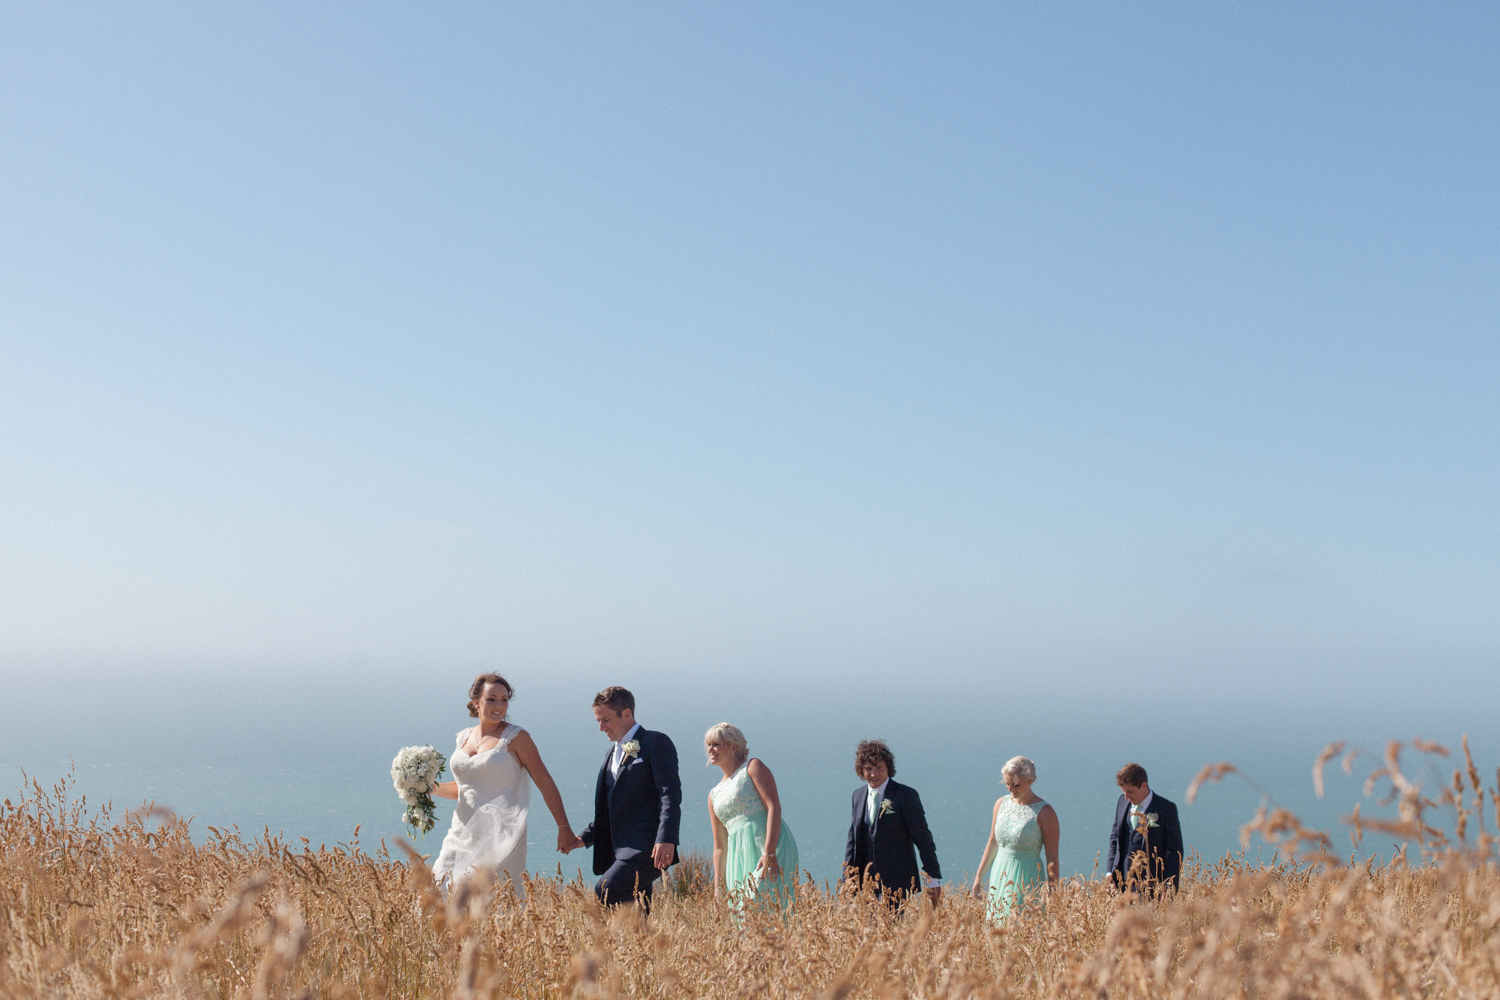 Bridal party walking through long grass at Boomrock wedding venue